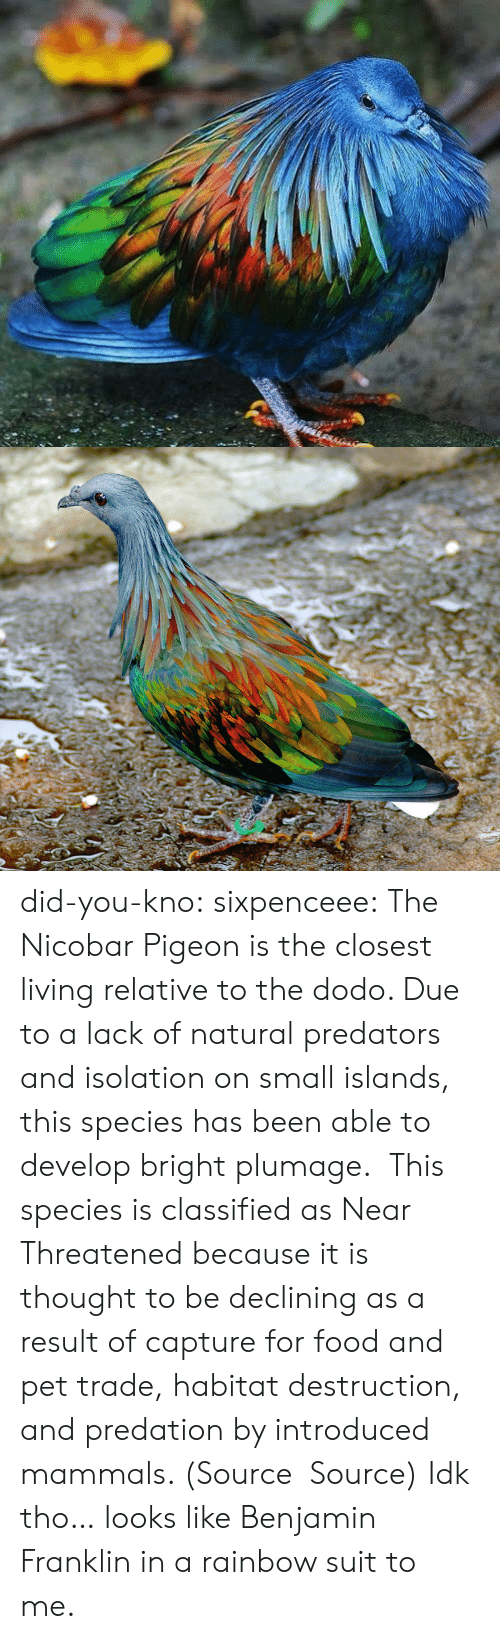 predation: did-you-kno:  sixpenceee:  The Nicobar Pigeonis the closest living relative to the dodo. Due to a lack of natural predators and isolation on small islands, this species has been able to develop bright plumage. This species is classified as Near Threatened because it is thought to be declining as a result of capture for food and pet trade, habitat destruction, and predation by introduced mammals. (Source Source)  Idk tho… looks like Benjamin Franklin in a rainbow suit to me.